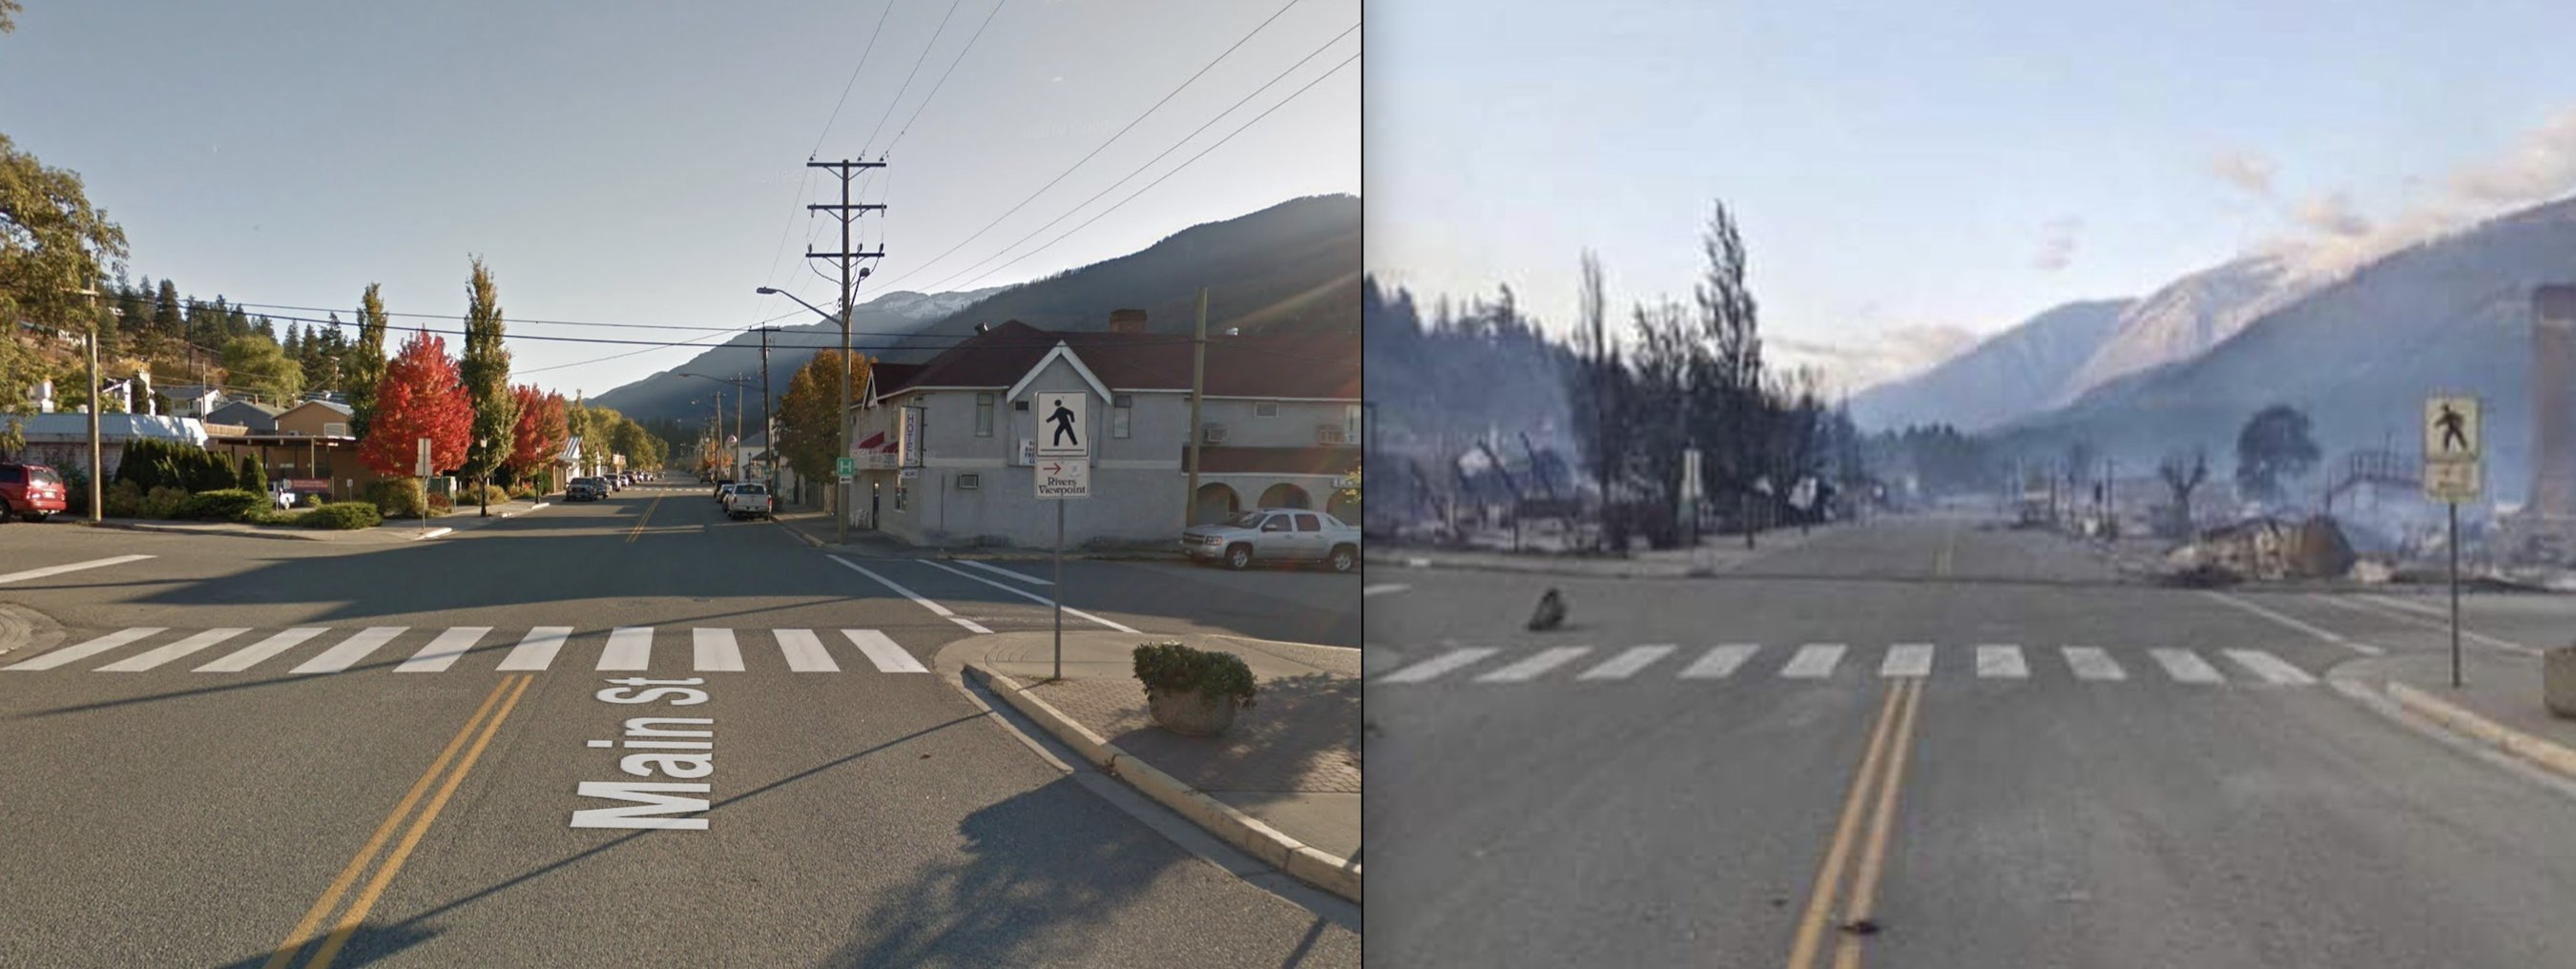 Fire destroys Lytton, which saw 48.6°C Canadian temperature record